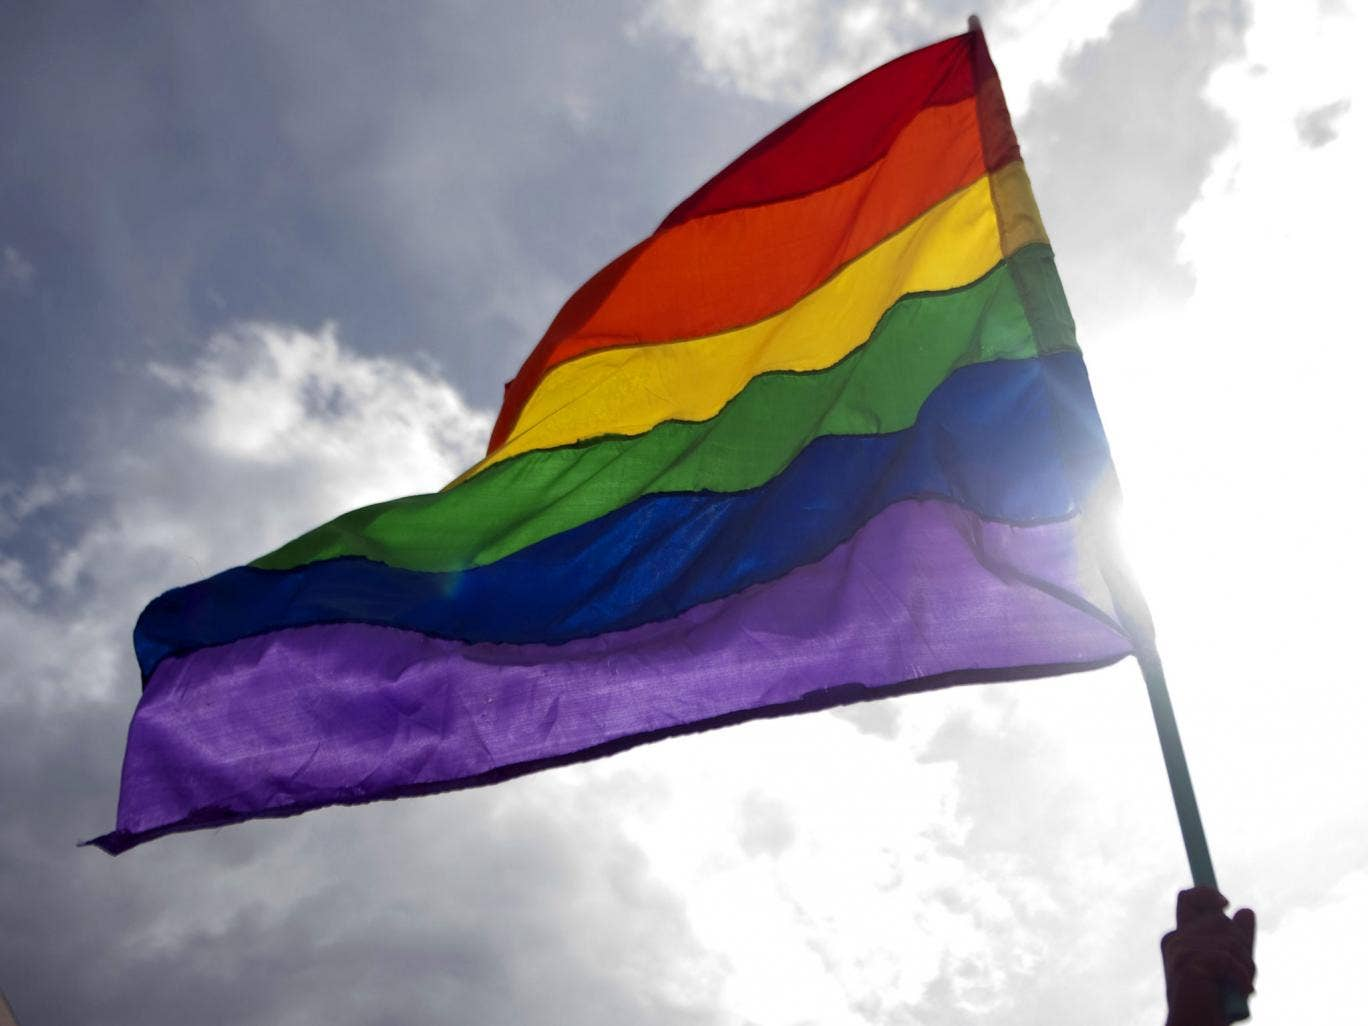 A reveller waves a rainbow flag during the Gay Pride Parade in Medellin, Antioquia department, Colombia on June 30, 2013.